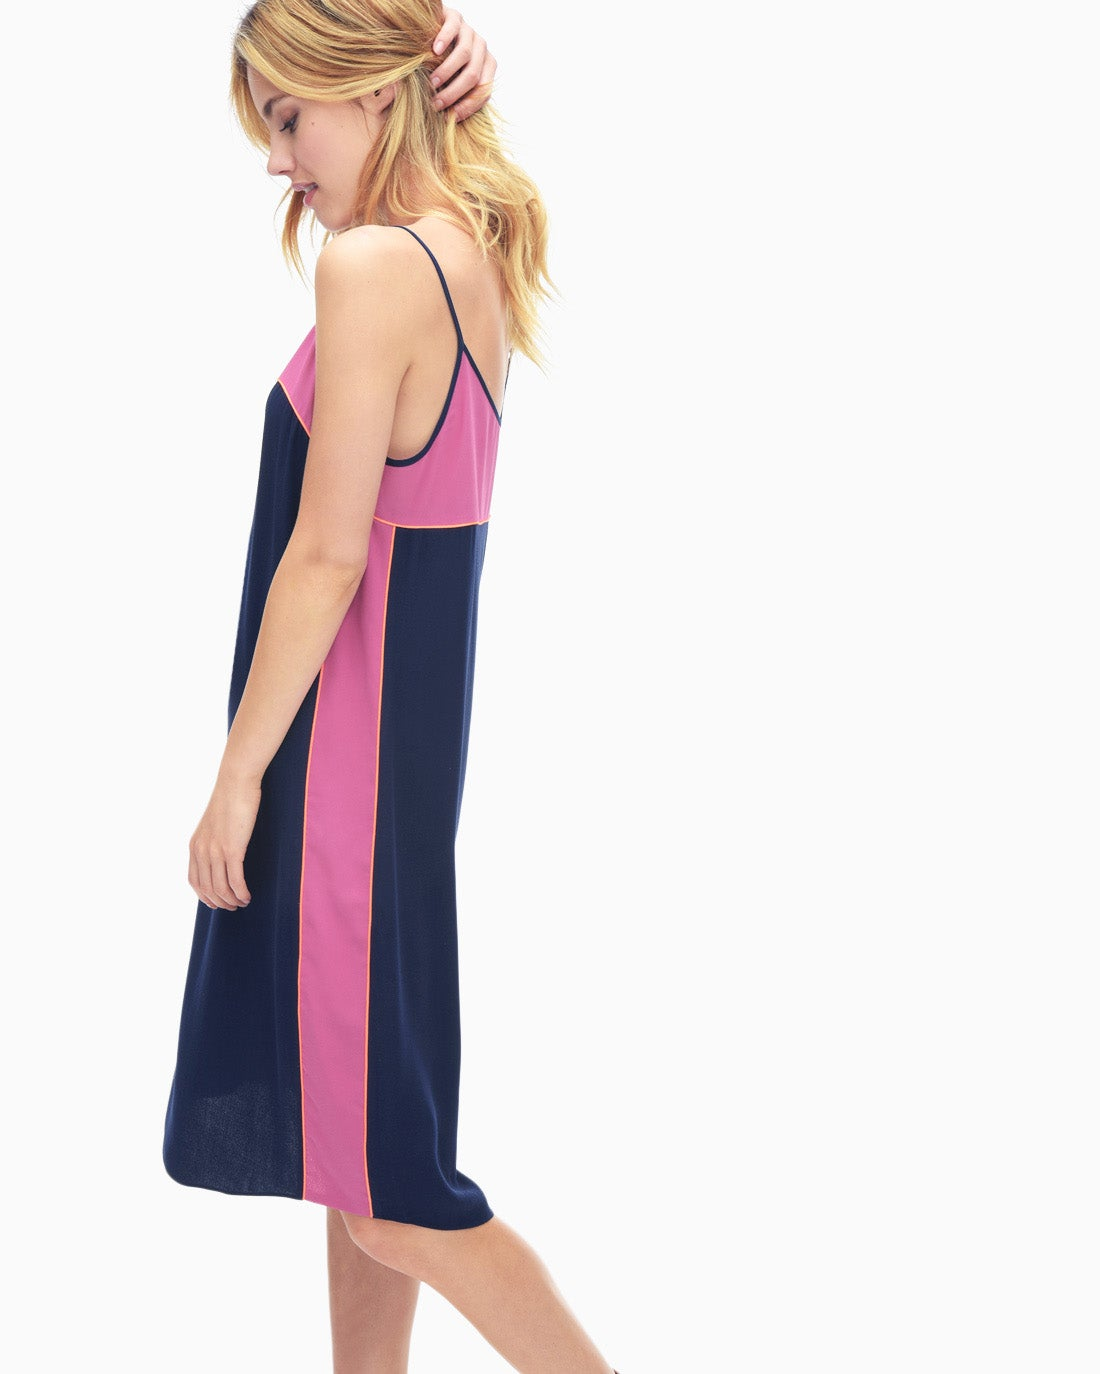 Splendid Women's Colorblock Cami Dress